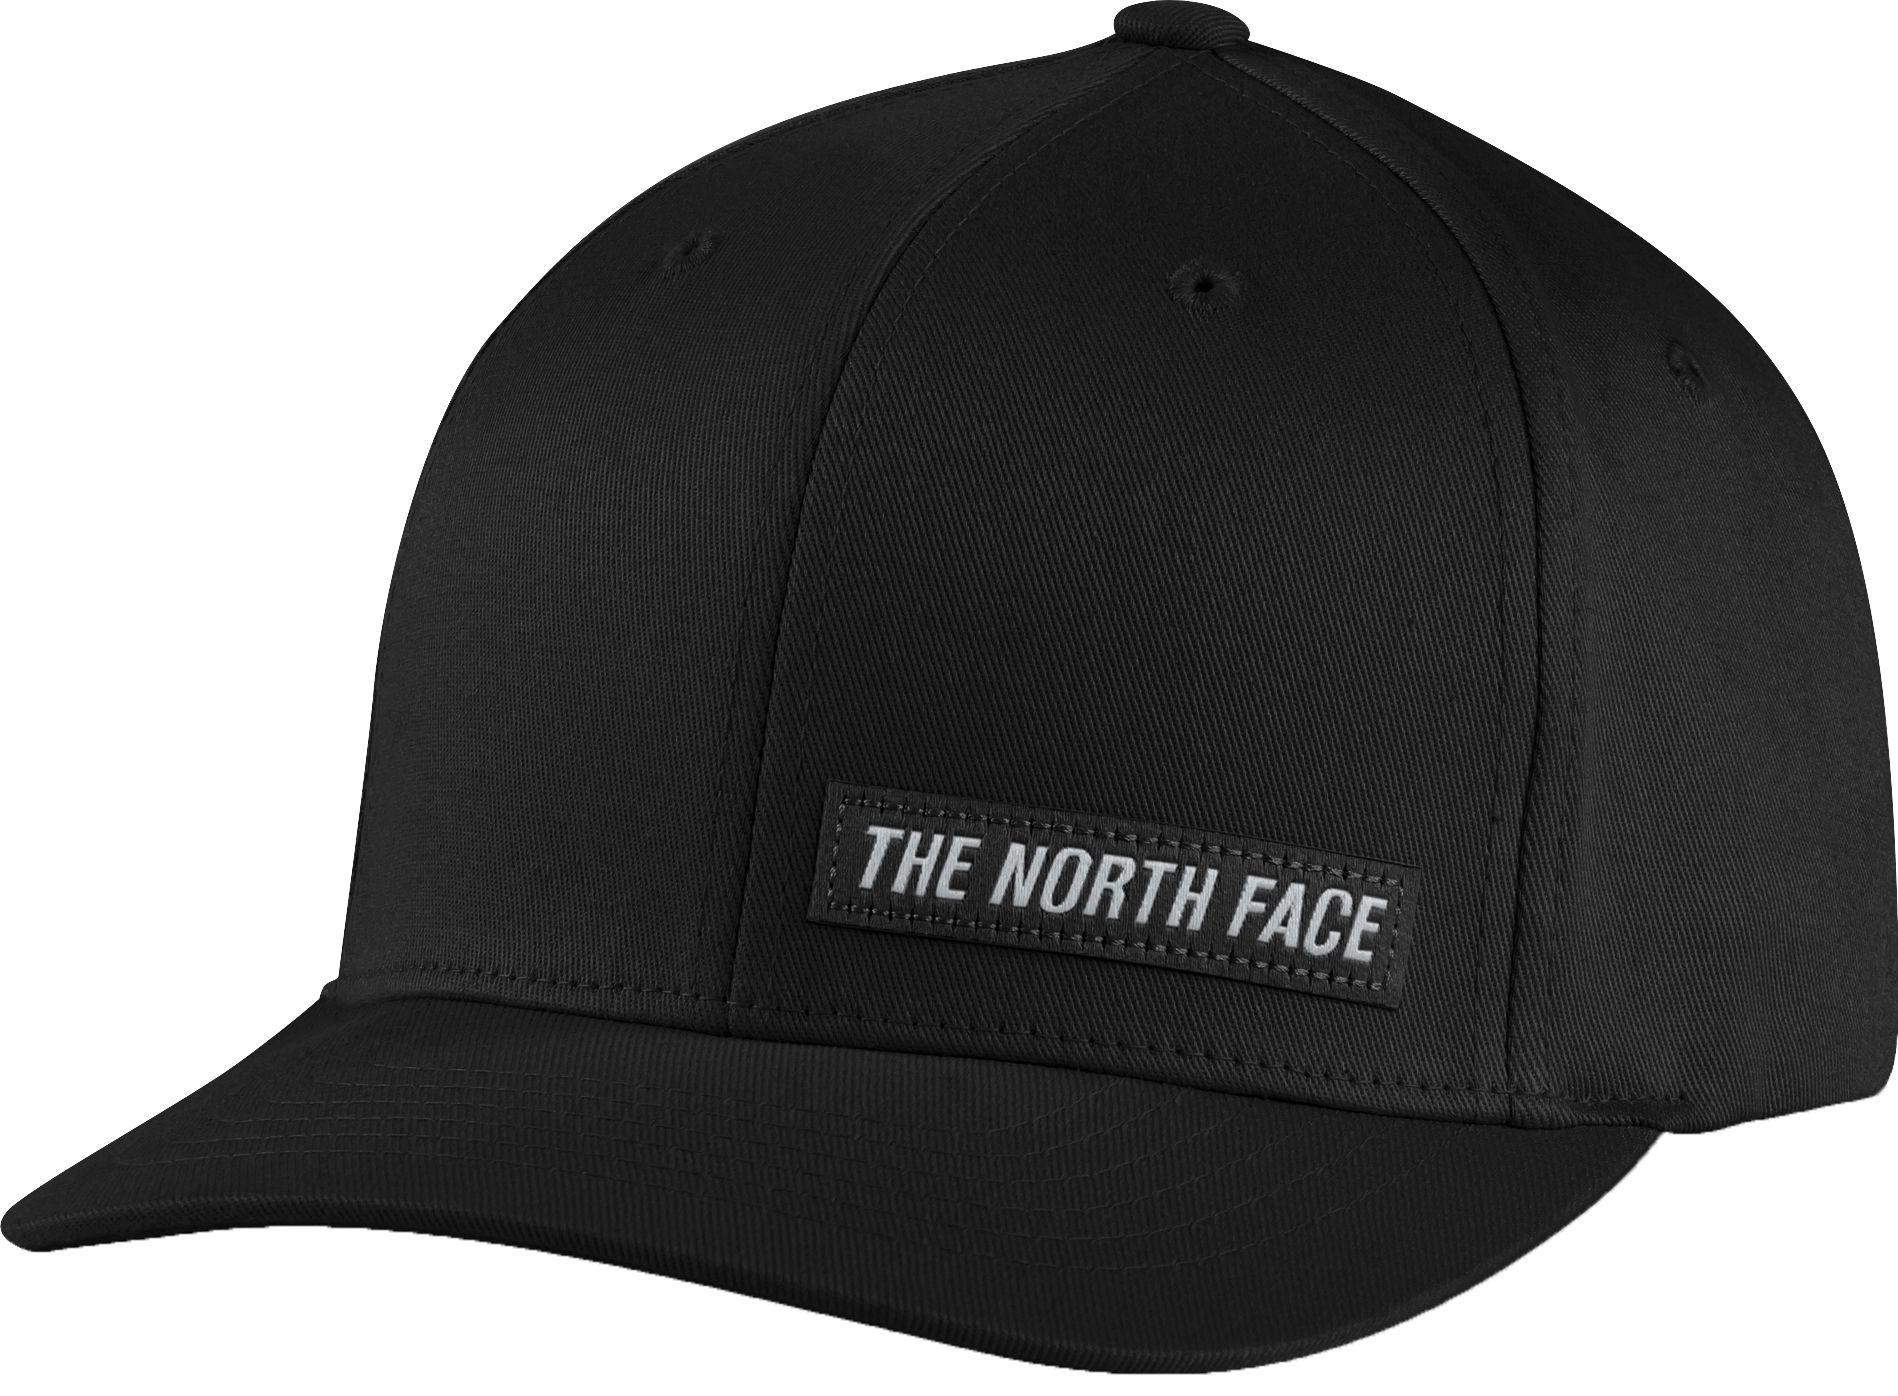 9957806e704 Lyst the north face sbe flexfit hat past season in black for men jpg  1898x1396 North